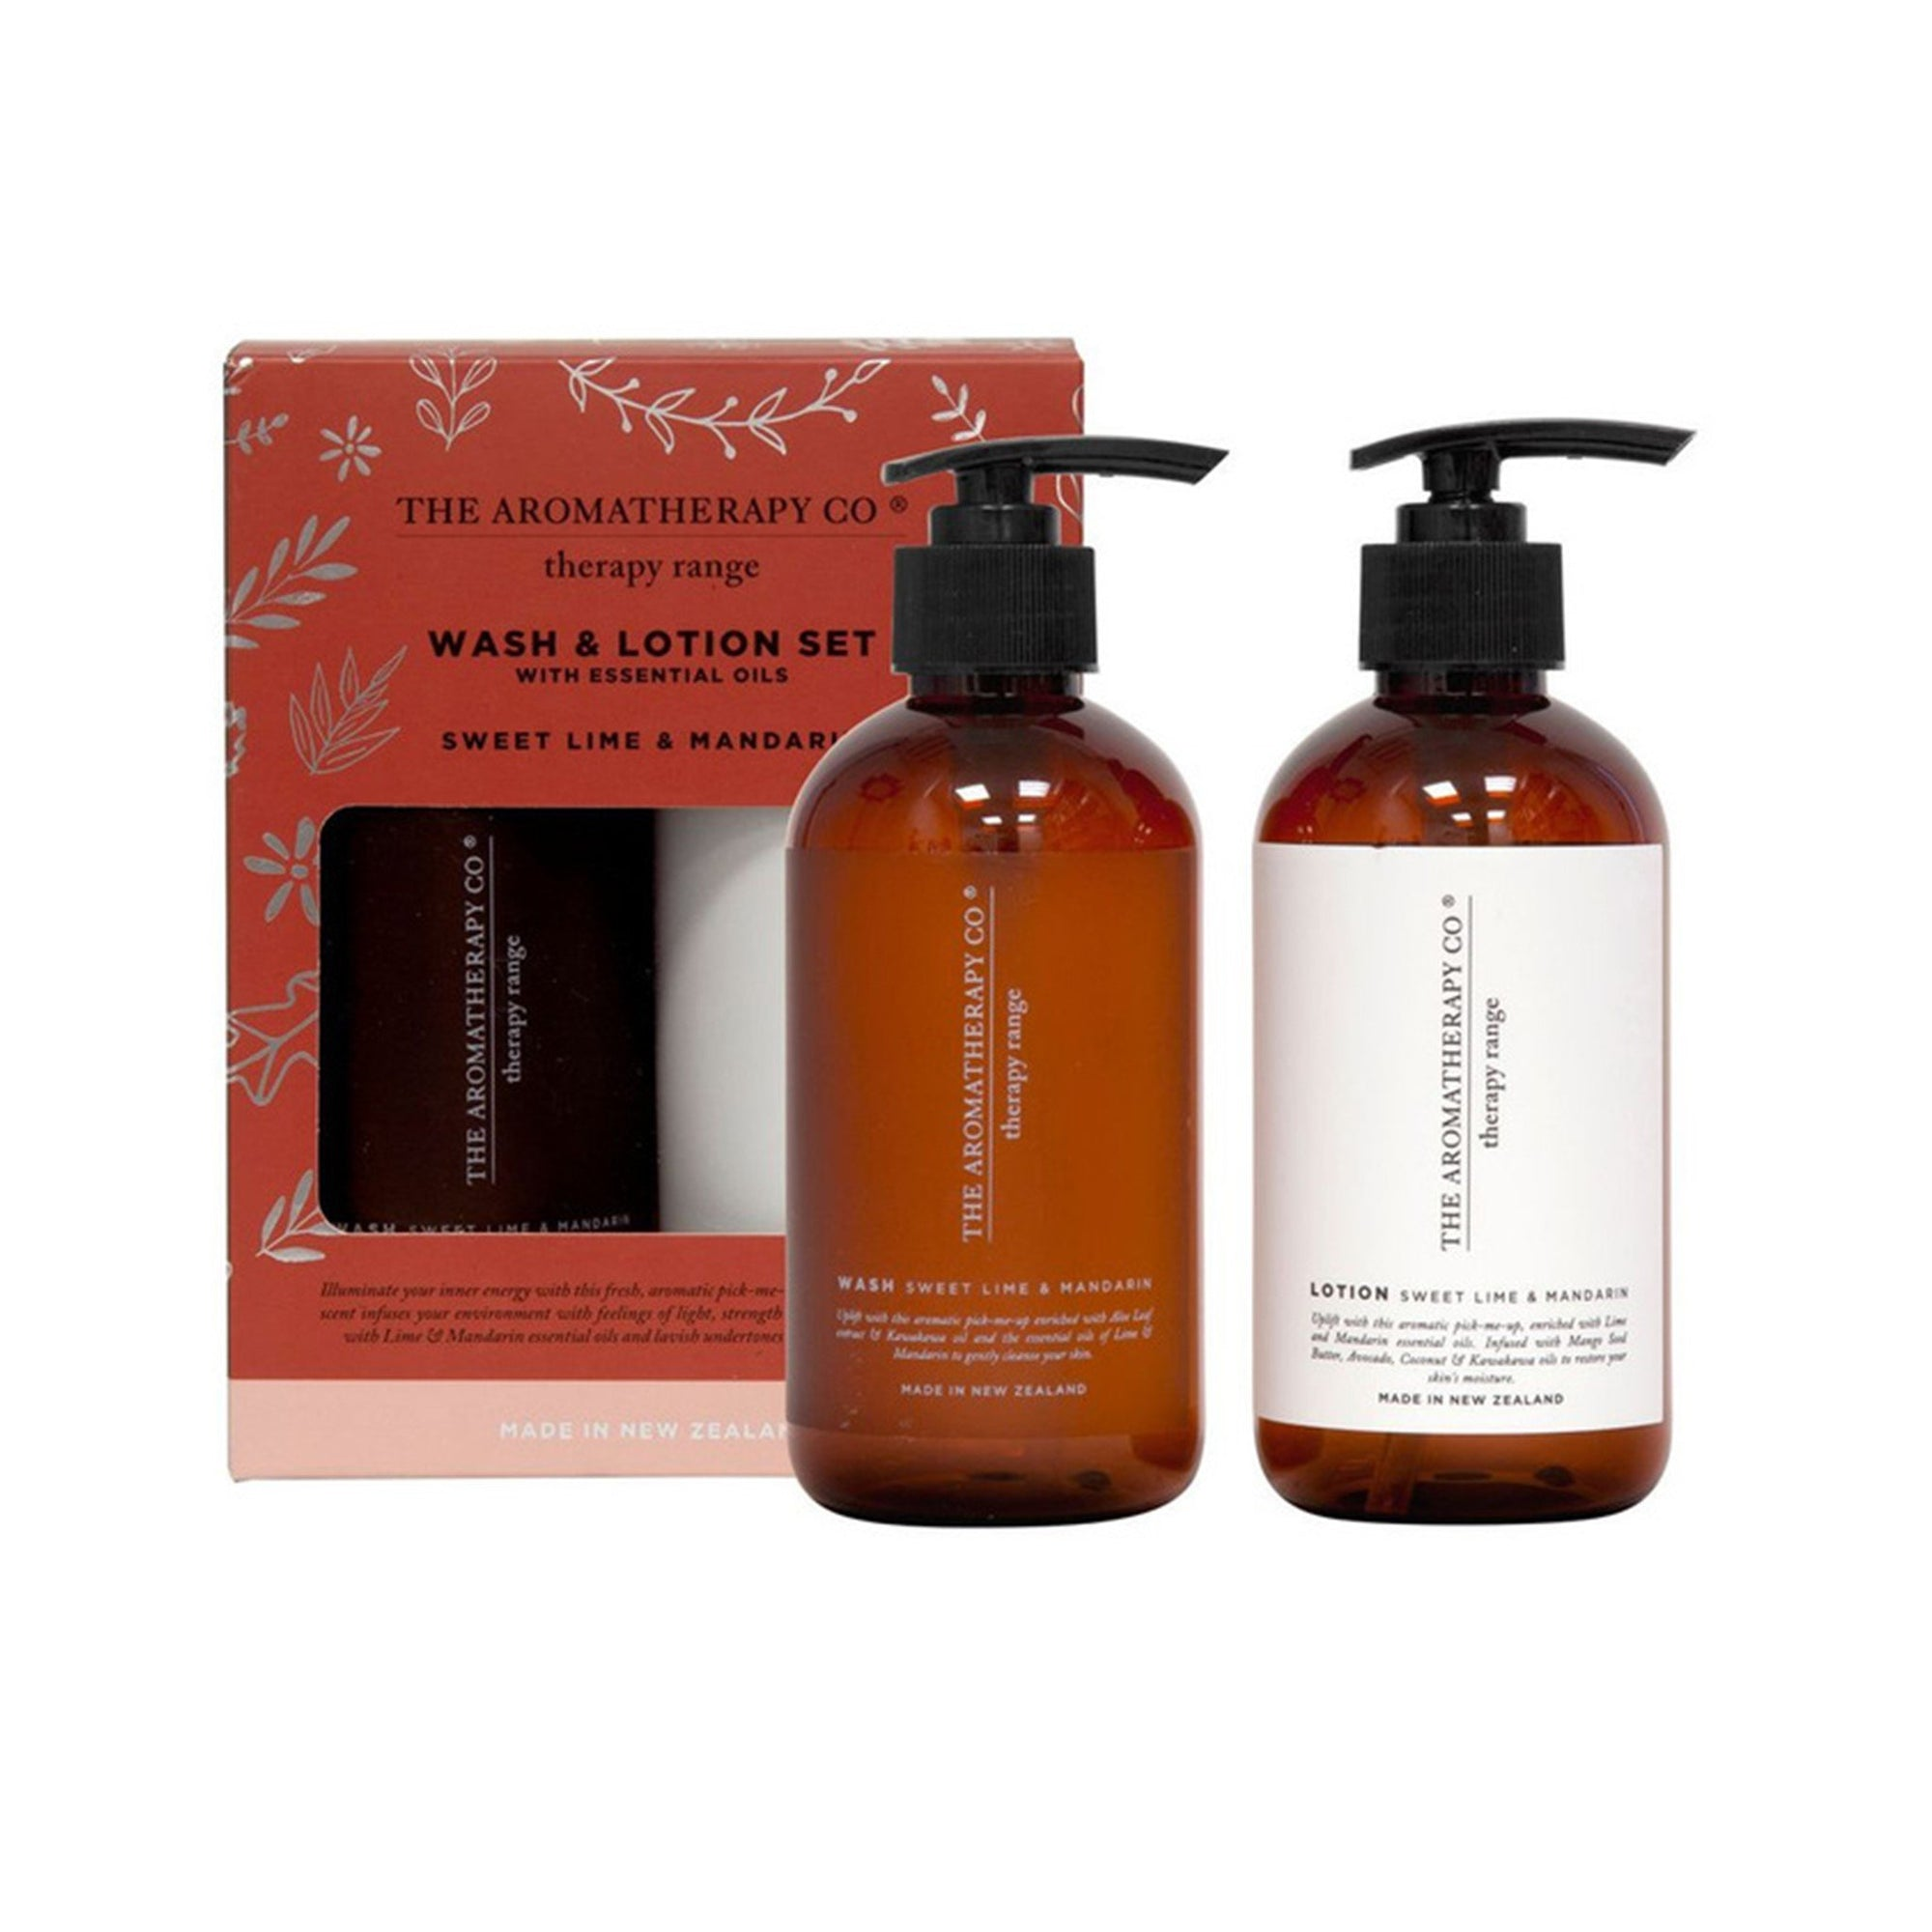 The Aromatherapy Co. Sweet Lime & Mandarin Wash & Lotion Set